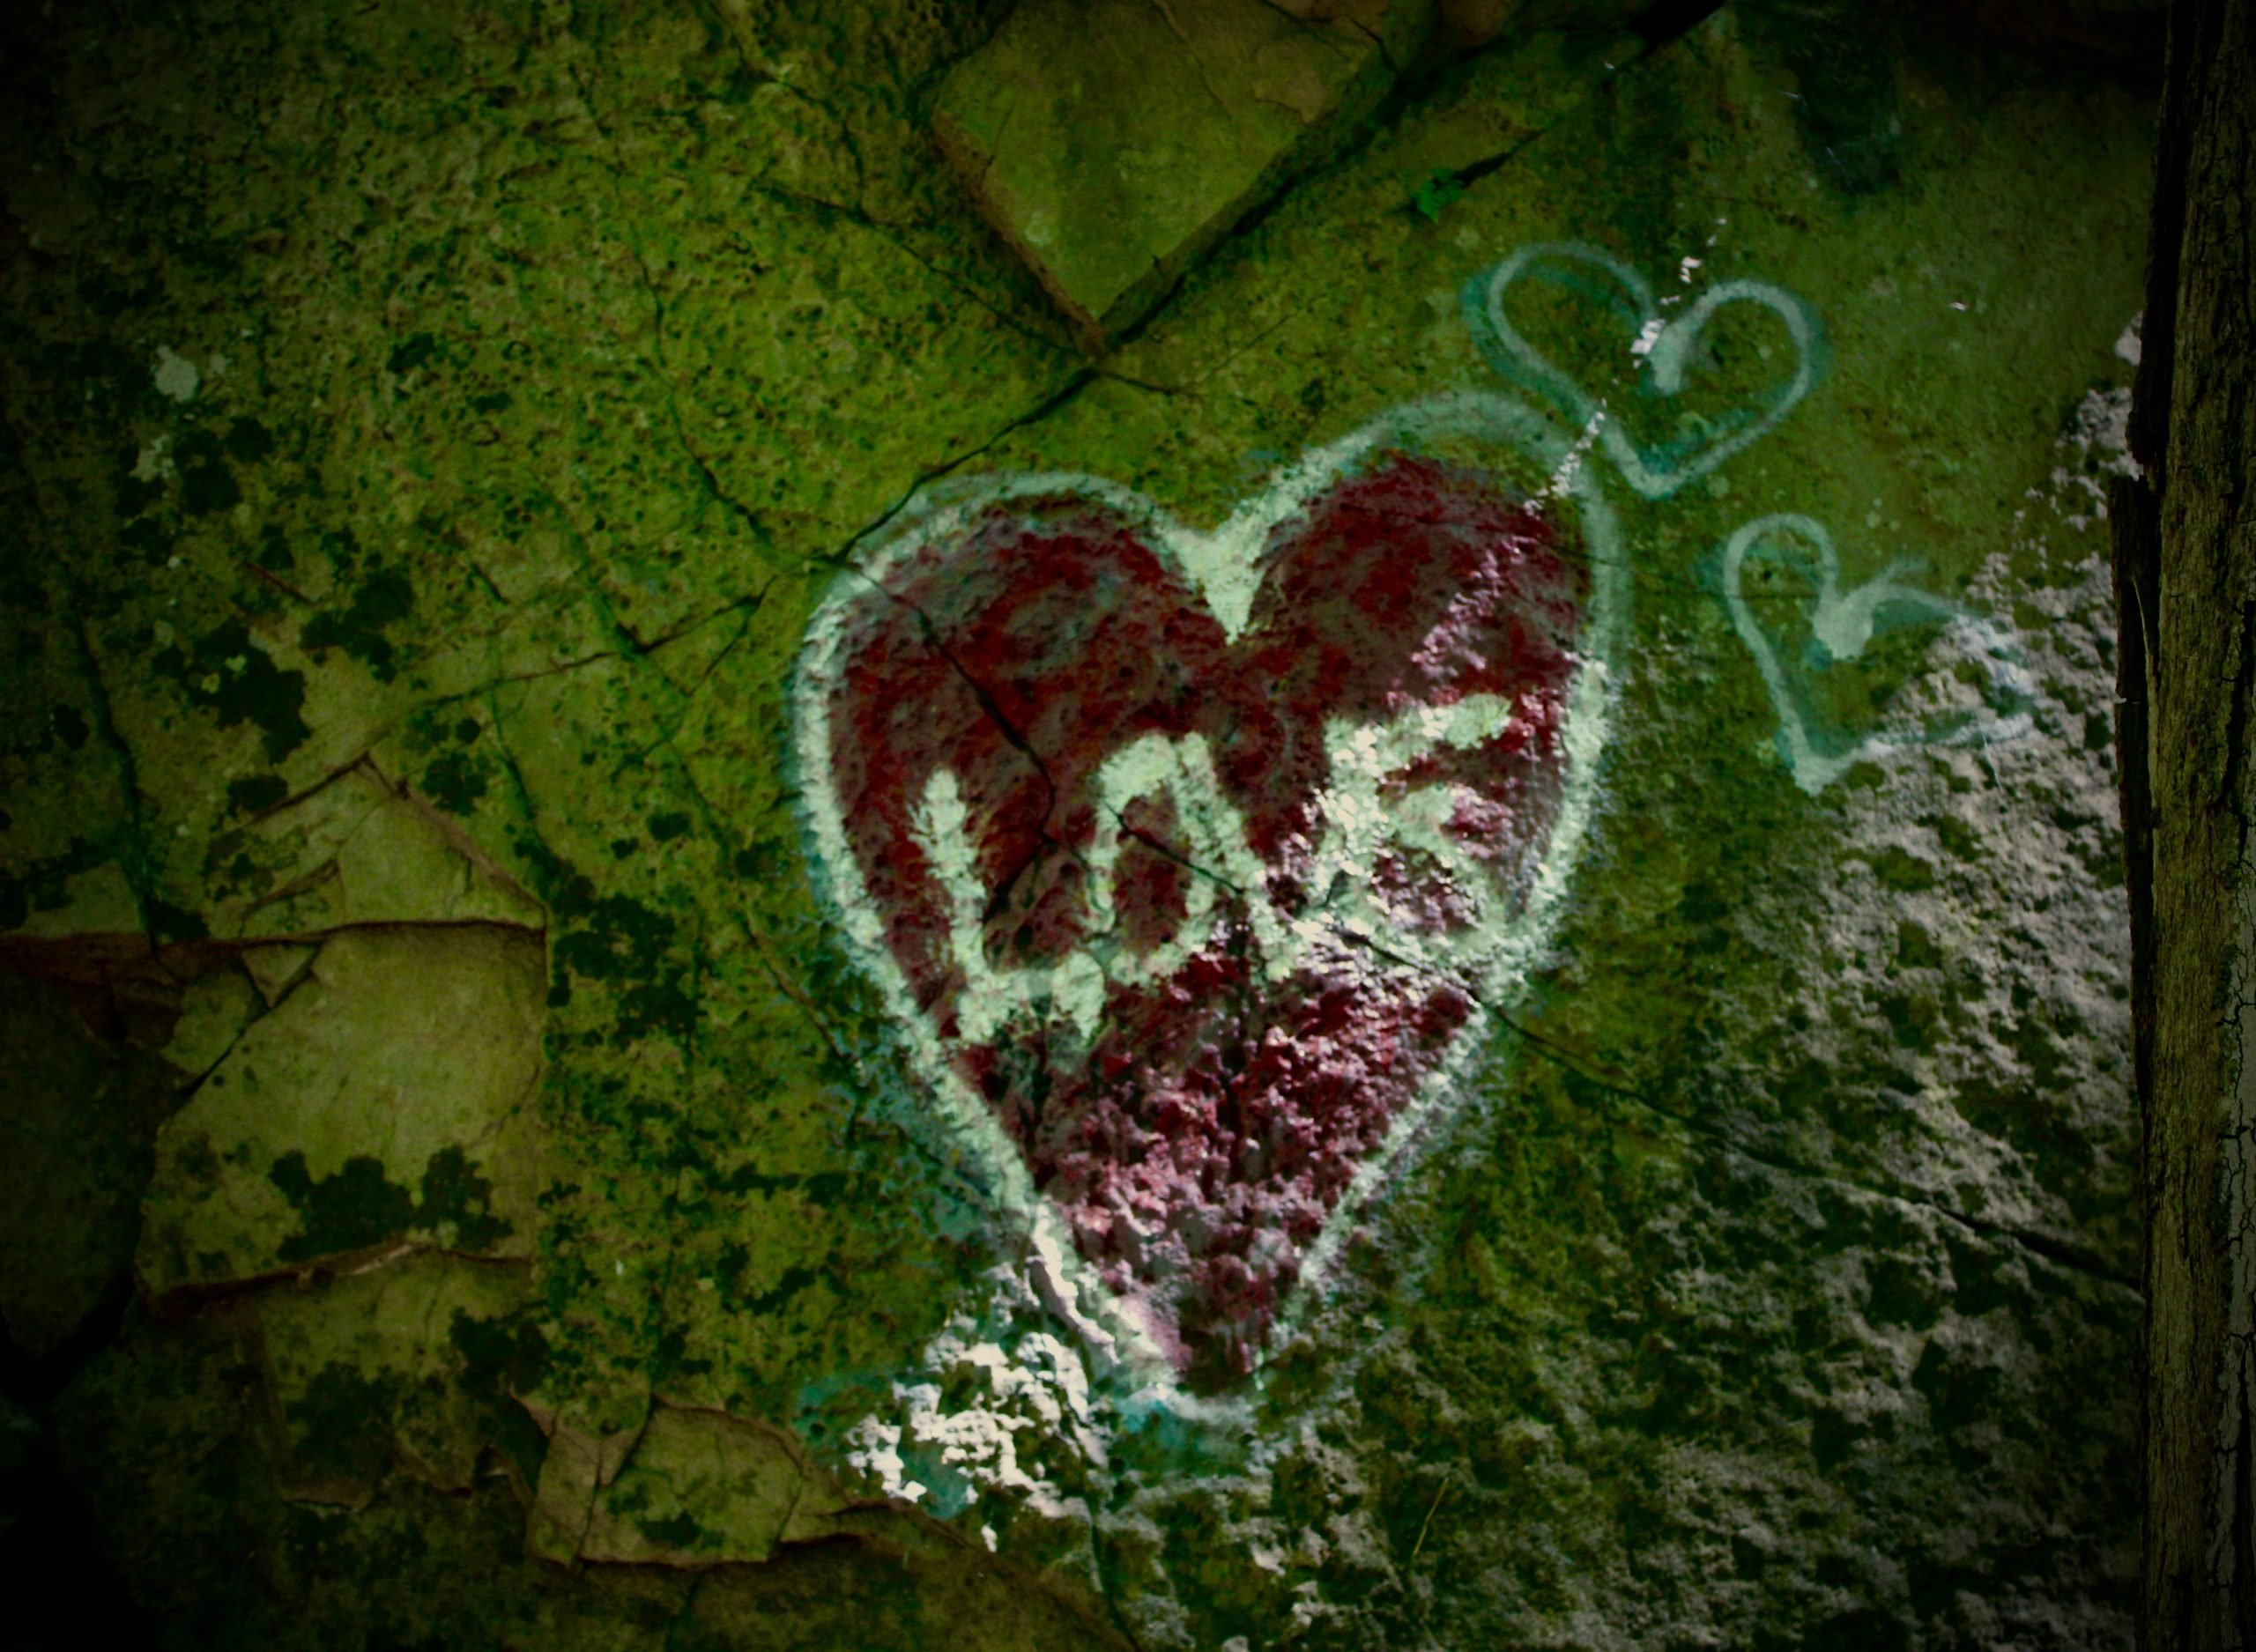 A heart spray painted on a rock